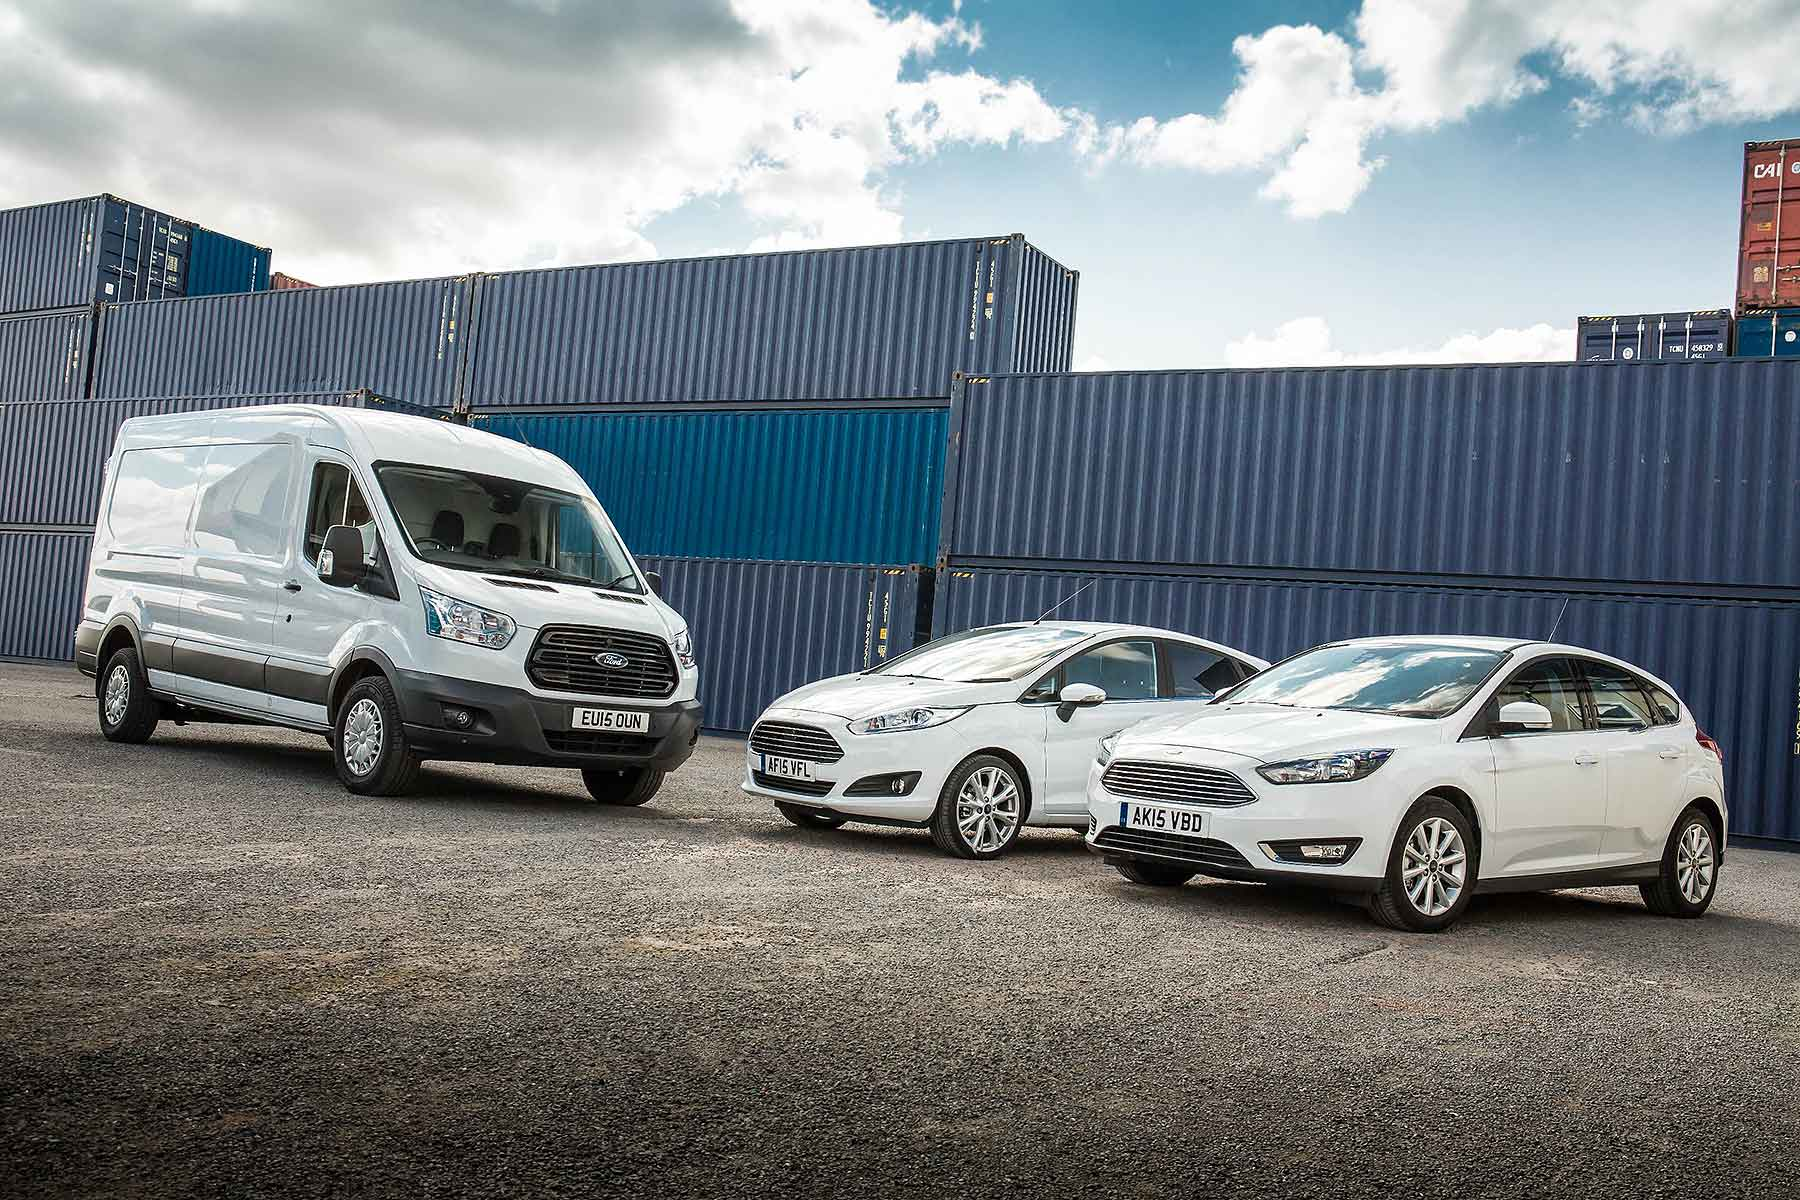 Ford Fiesta, Focus and Transit